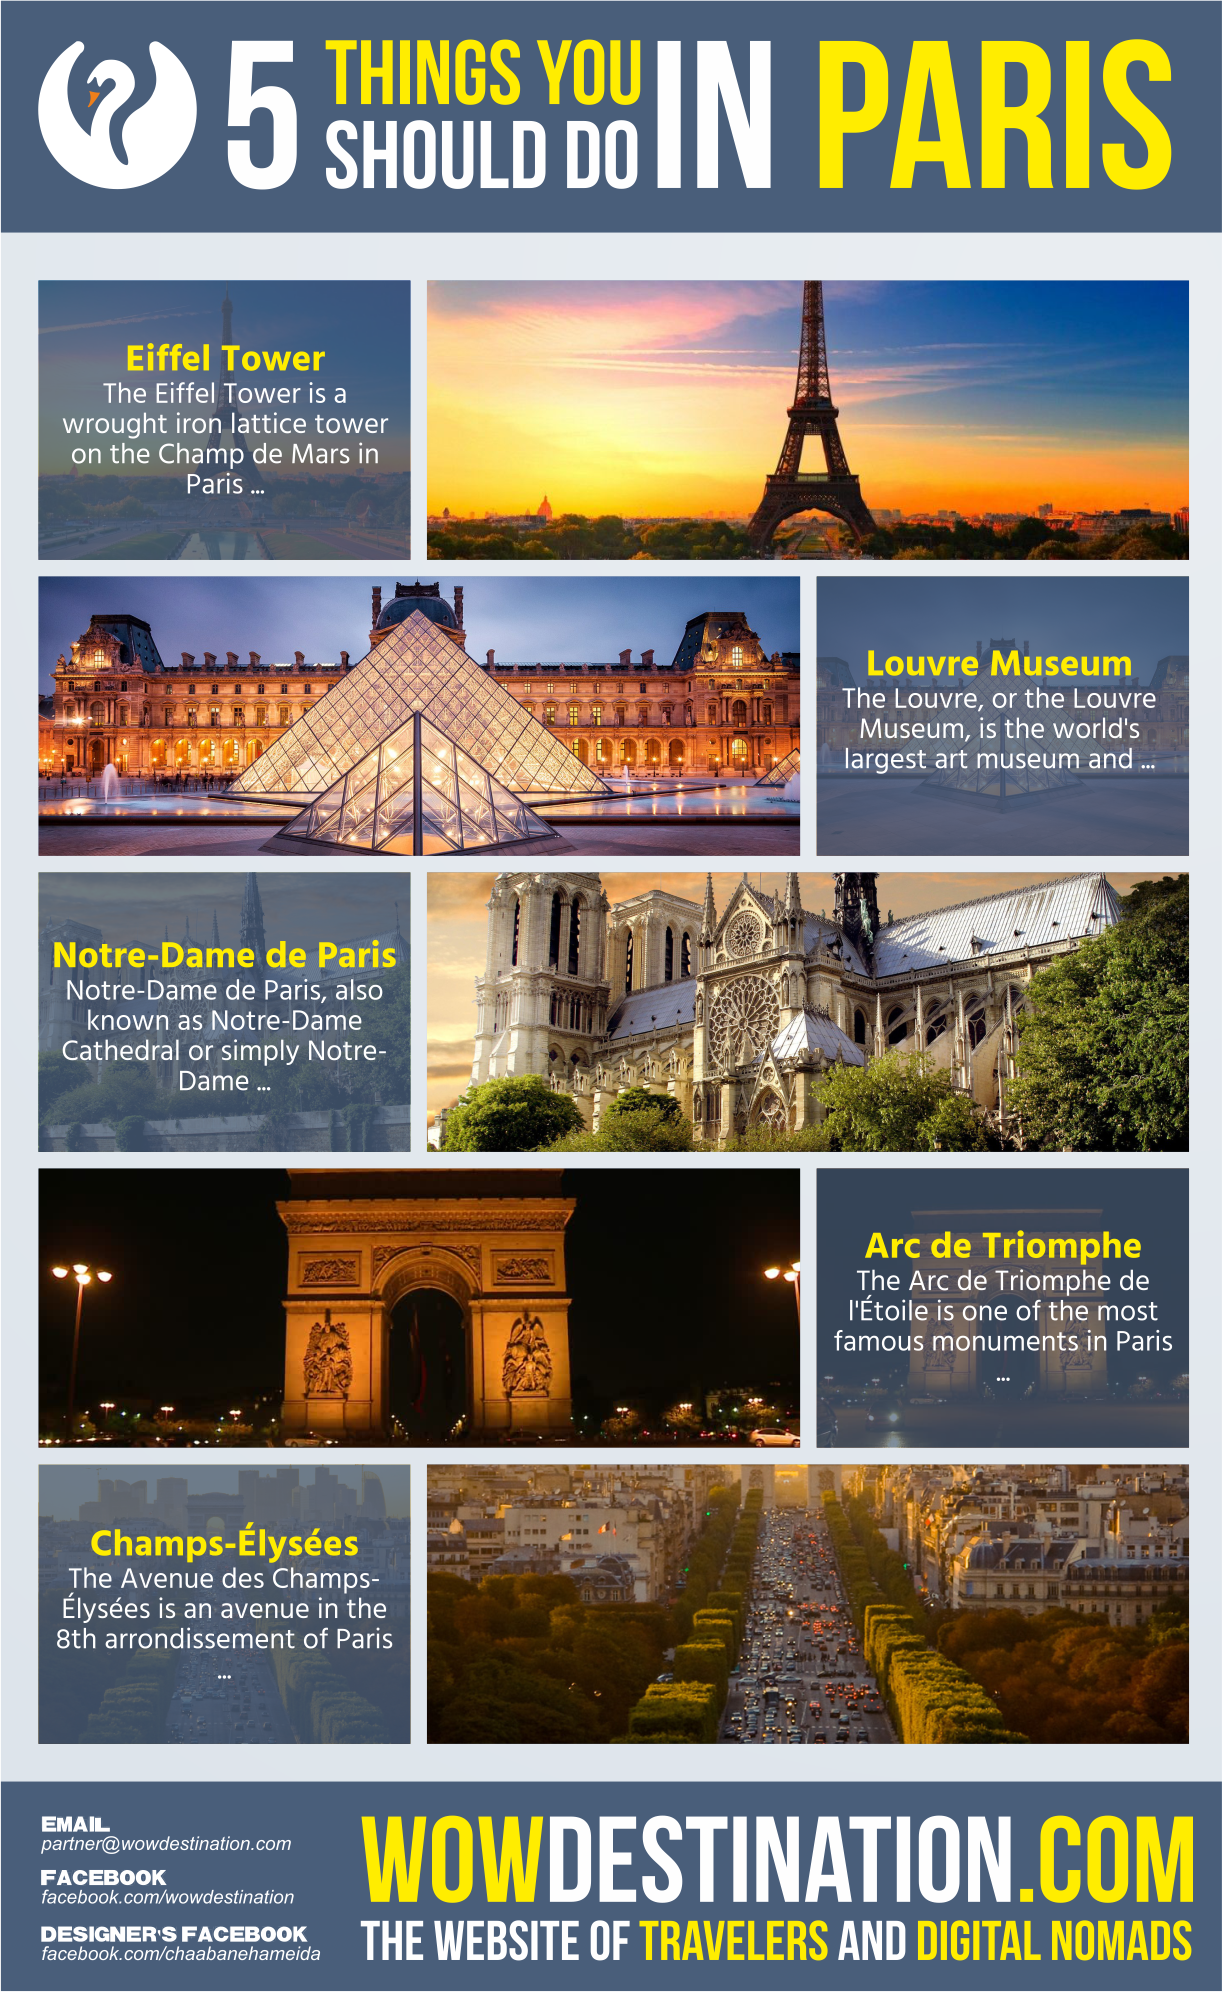 https://wowdestination.com/images/infographics/5thingsToDoParis.png